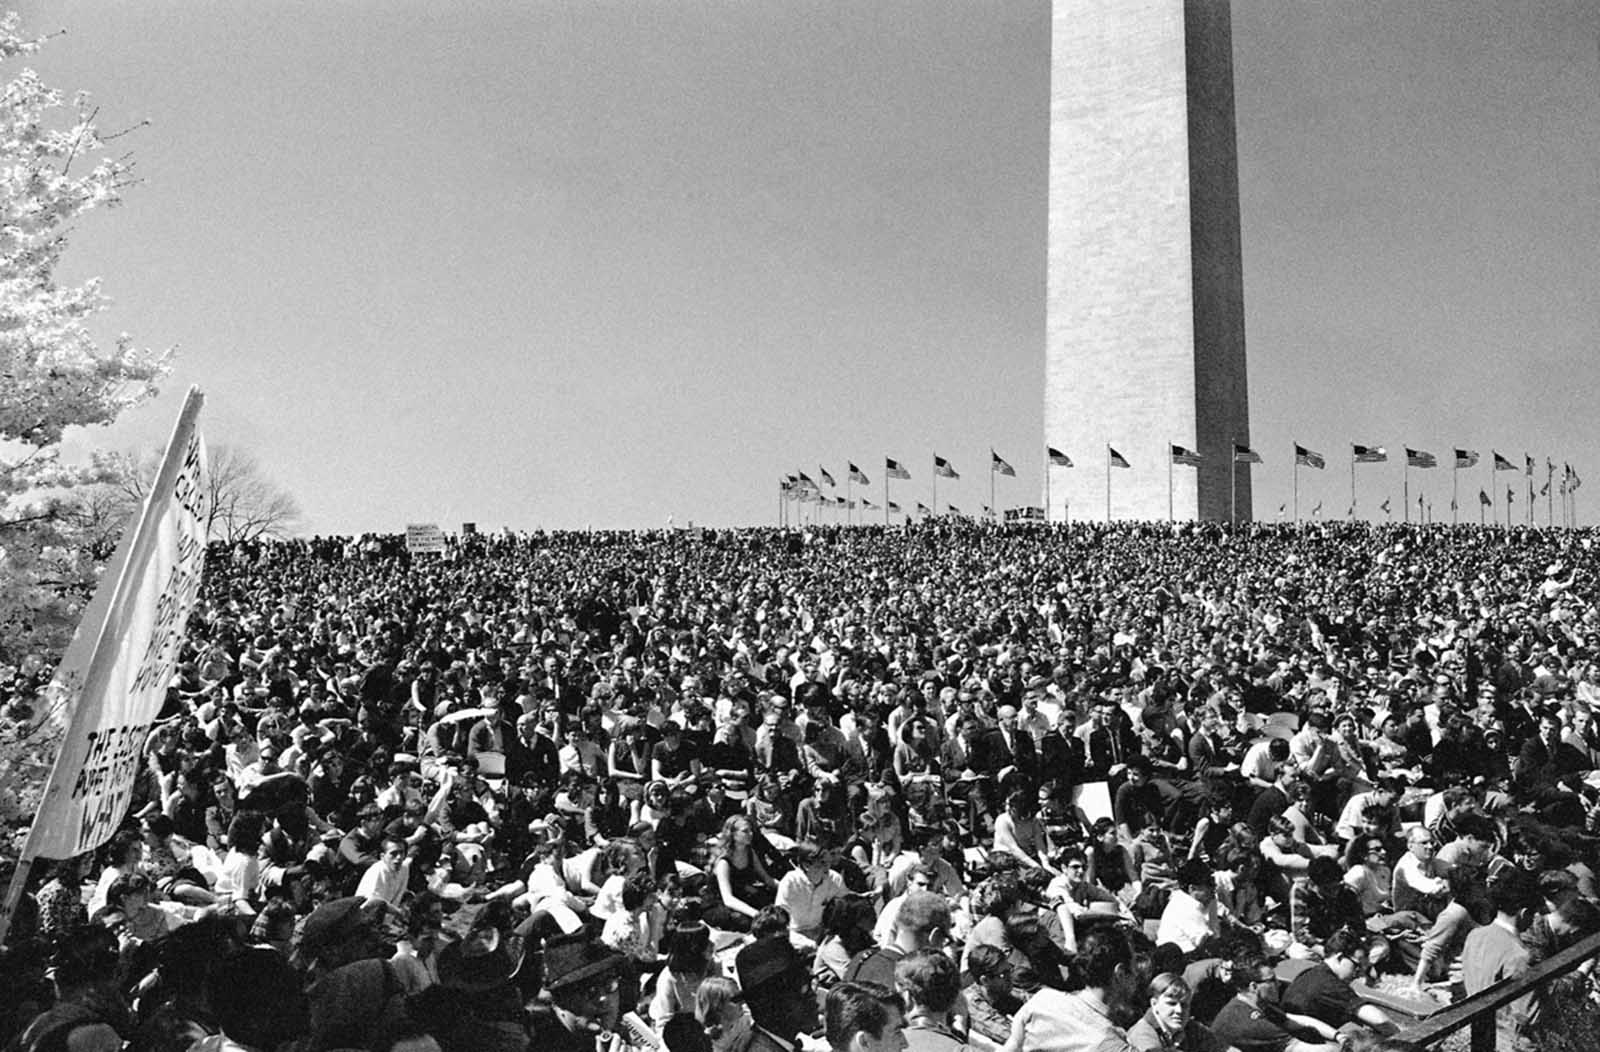 Thousands attend a rally on the grounds of the Washington Monument in Washington on April 17, 1965, to hear Ernest Gruening, a Democratic senator from Alaska, and other speakers discuss U.S. policy in Vietnam. The rally followed picketing of the White House by students demanding an end to Vietnam fighting.